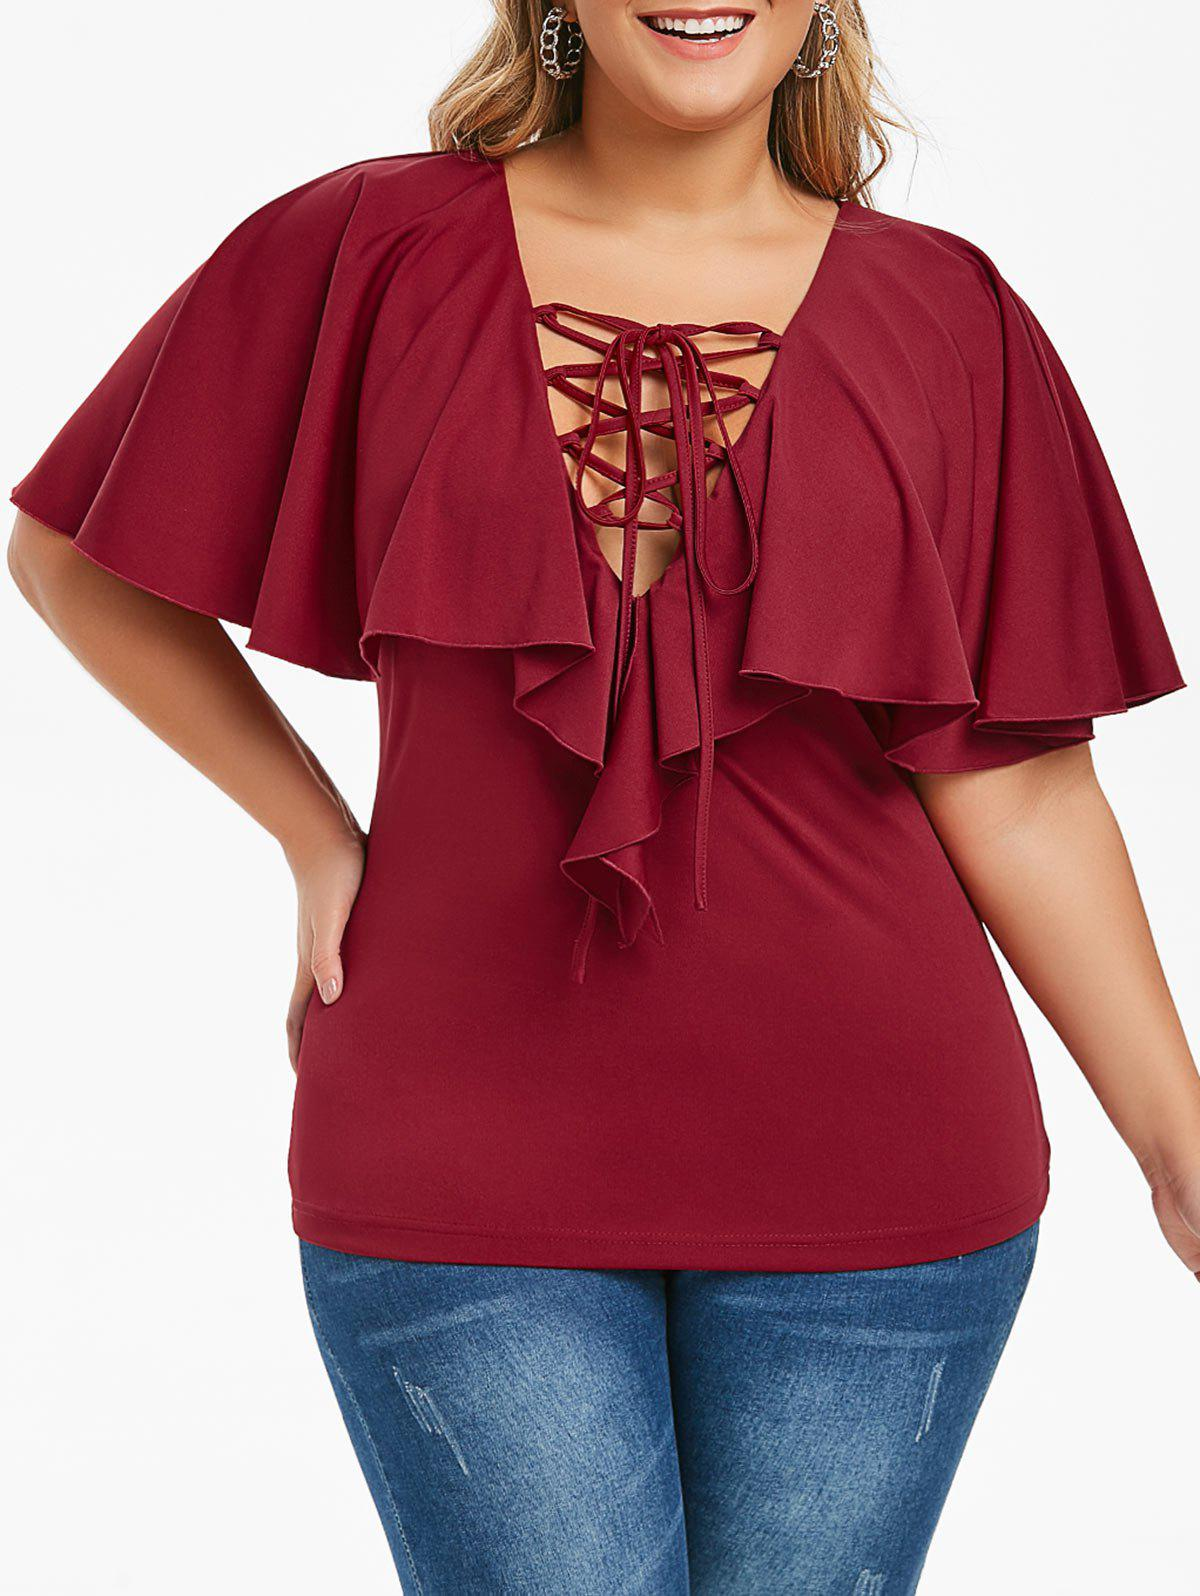 Plus Size Ruffled Lace Up T-shirt - RED WINE L